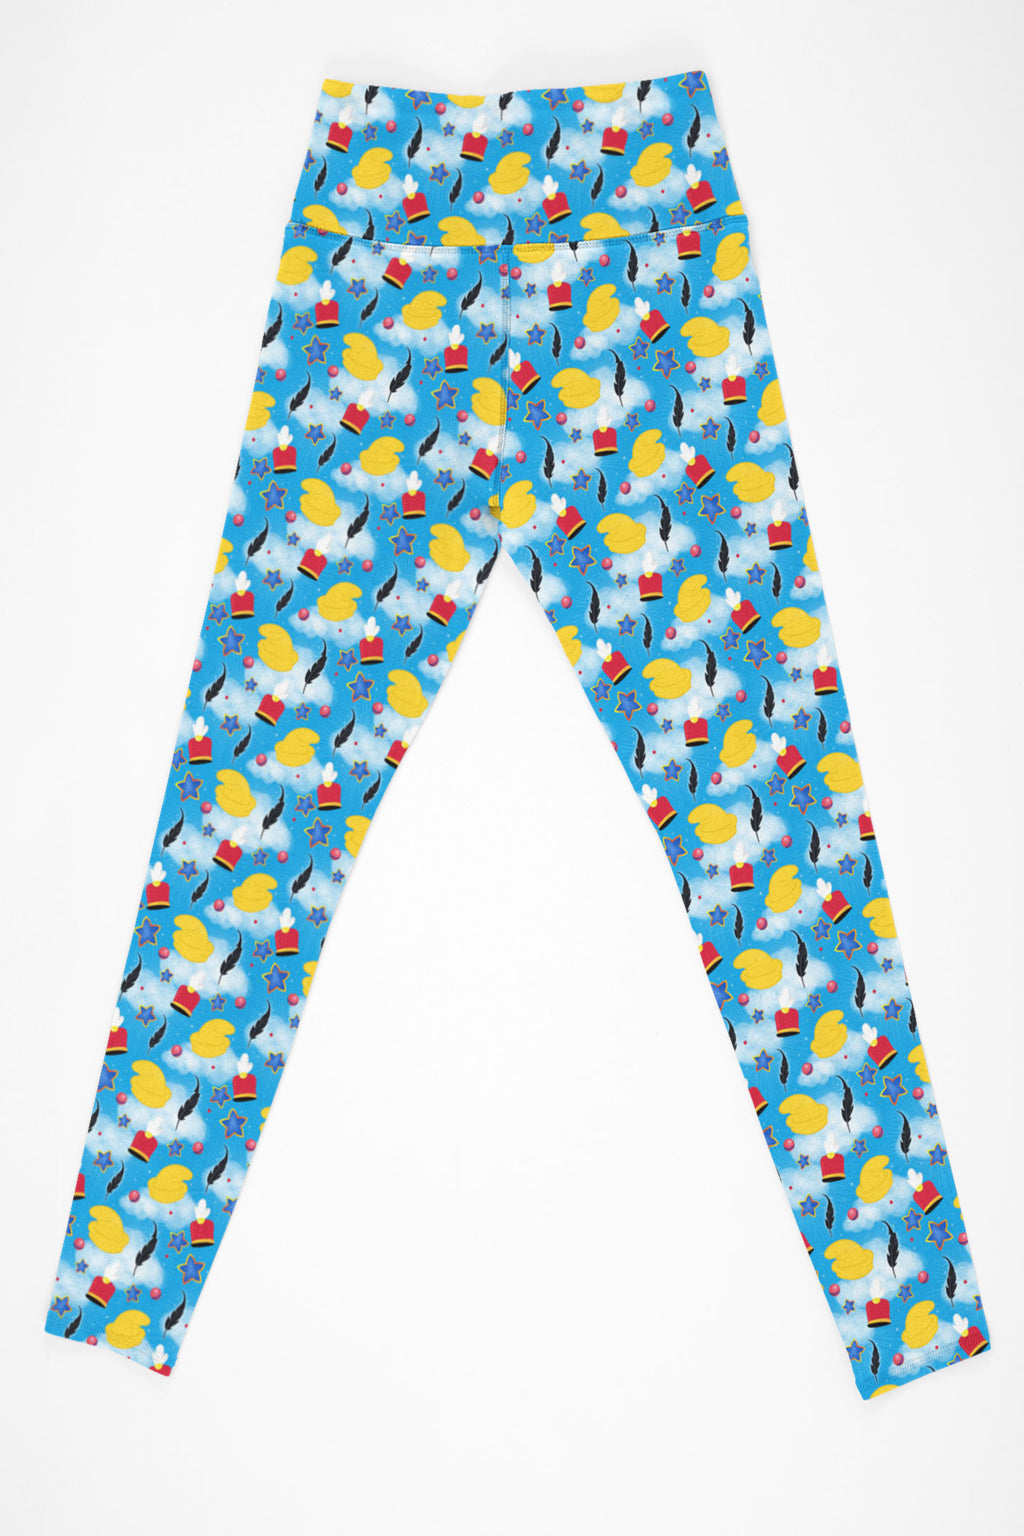 Circus Celebration Leggings - Kid's - Ambrie